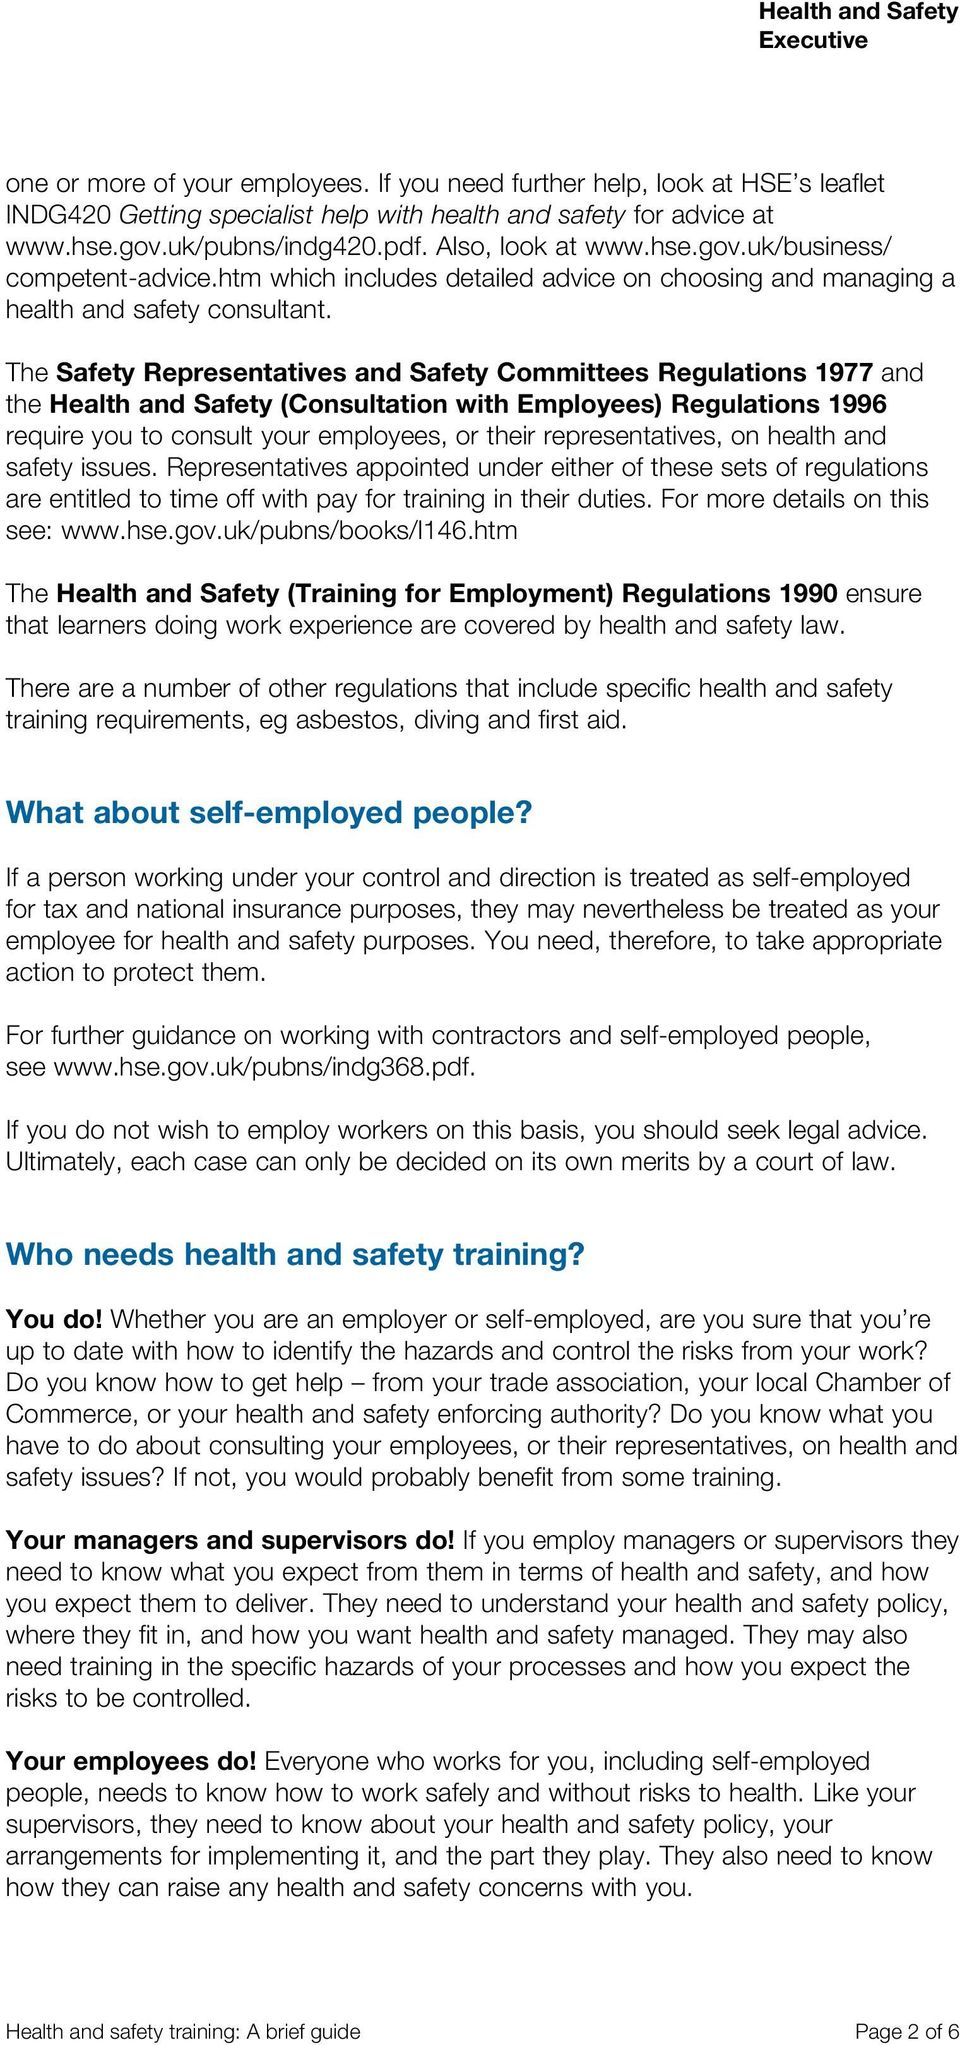 The Safety Representatives and Safety Committees Regulations 1977 and the Health and Safety (Consultation with Employees) Regulations 1996 require you to consult your employees, or their